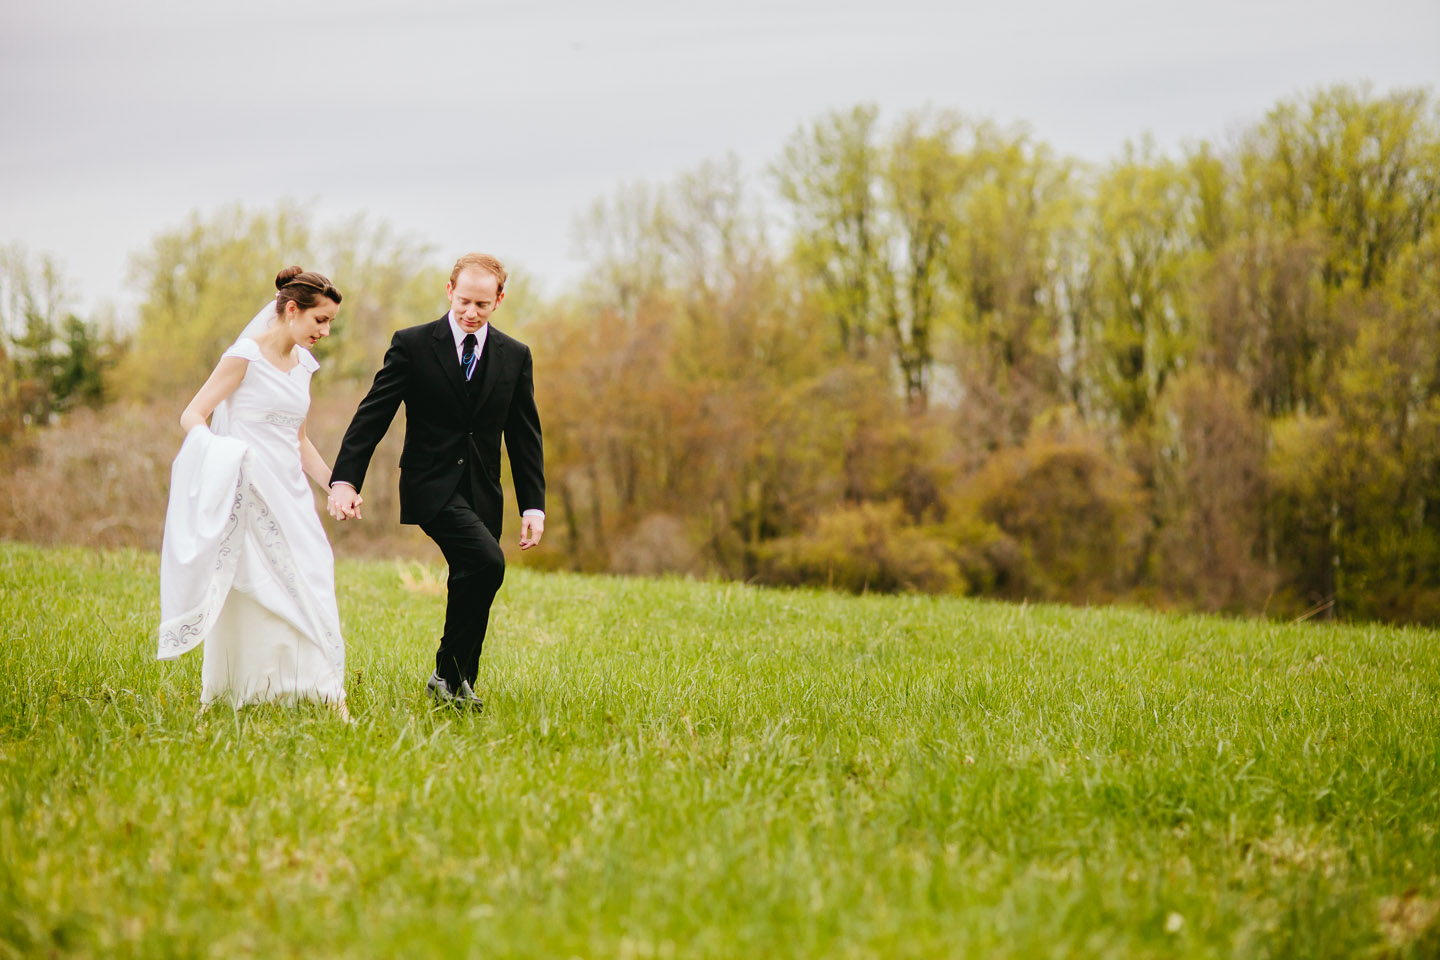 Weddings at Stepping Stone Farm